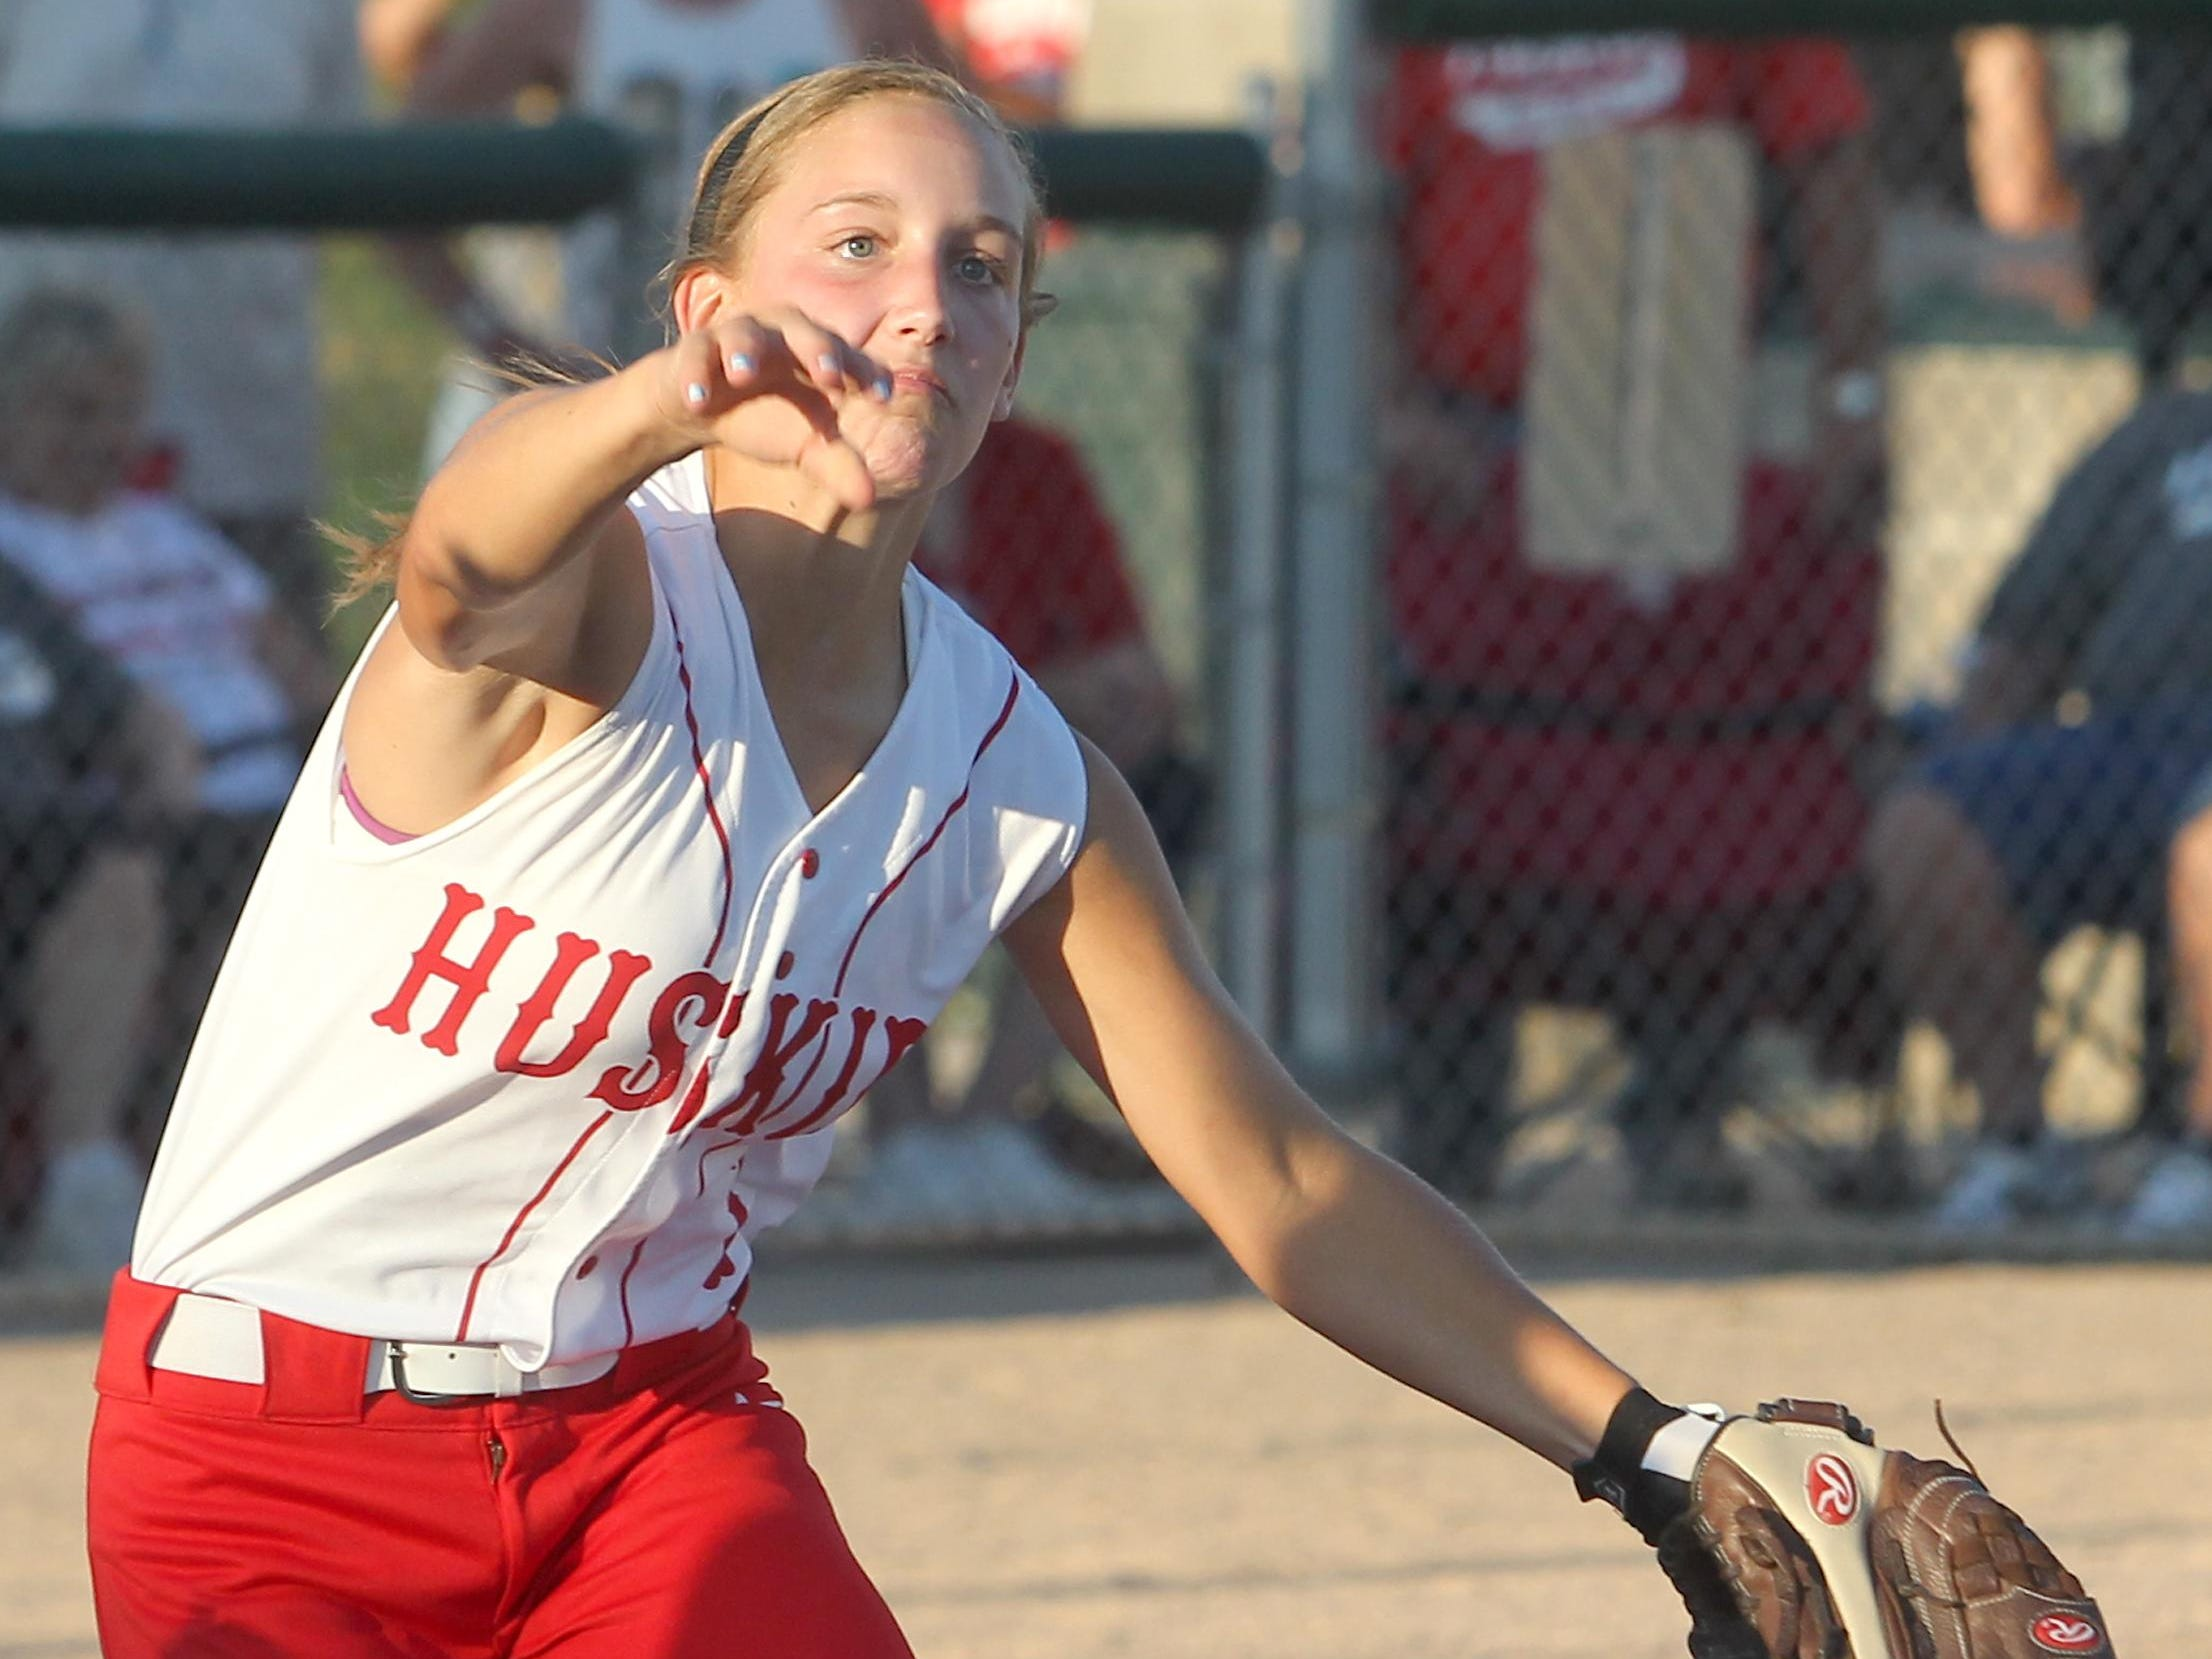 Highland's Cheyann Adamson makes the play to first during their game against Regina in Iowa City on Monday, July 15, 2013. Benjamin Roberts / Iowa City Press-Citizen